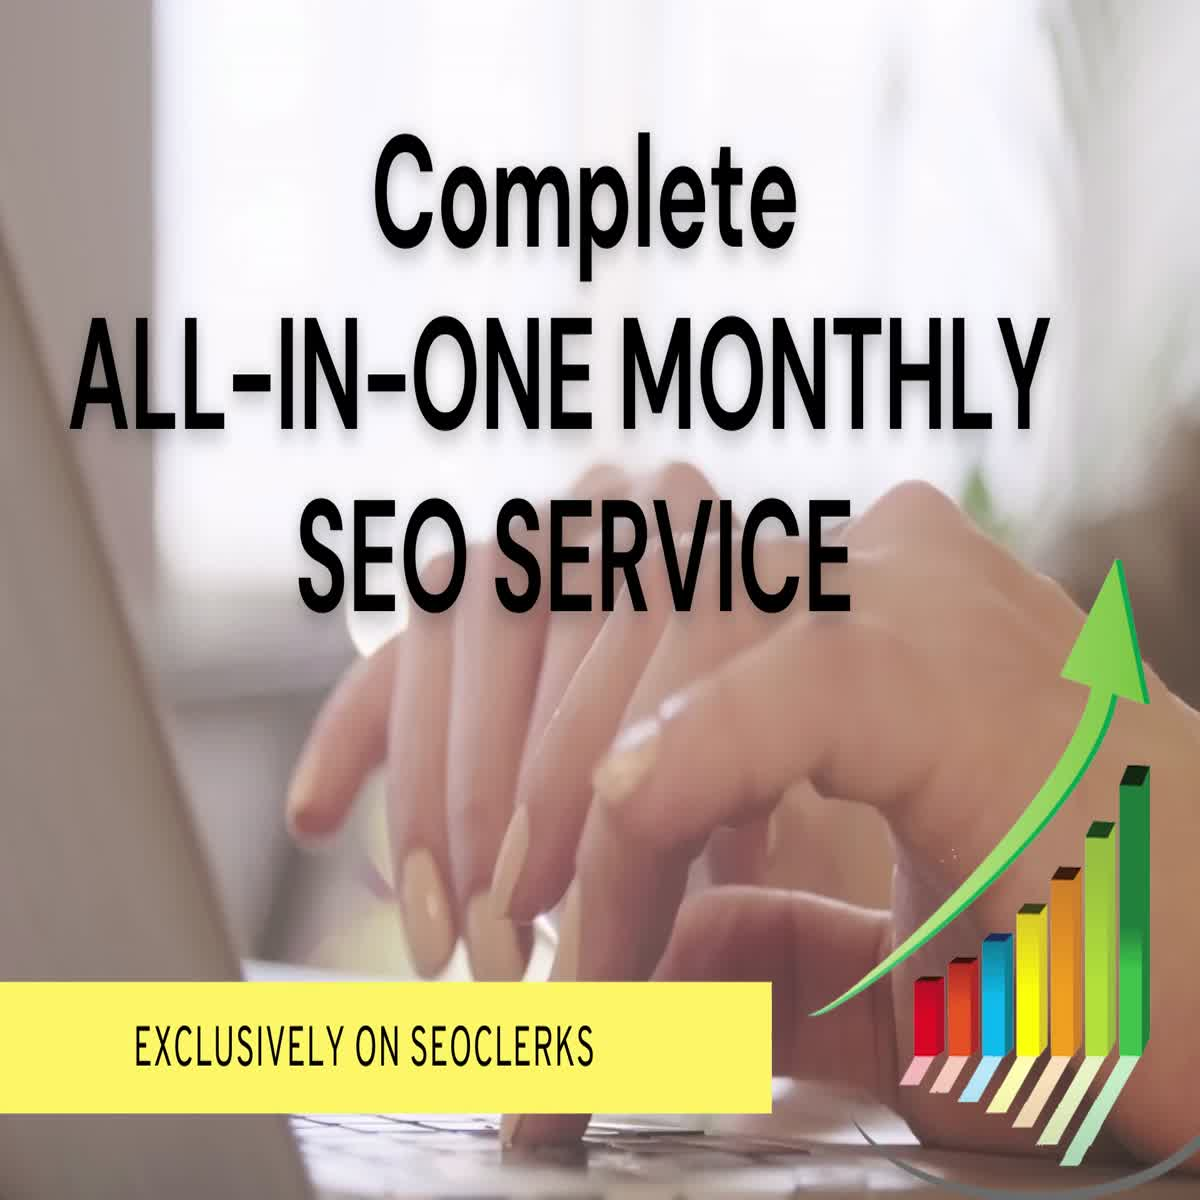 Complete Monthly SEO for Website Onpage/Offpage for higher rankings and traffic/sales